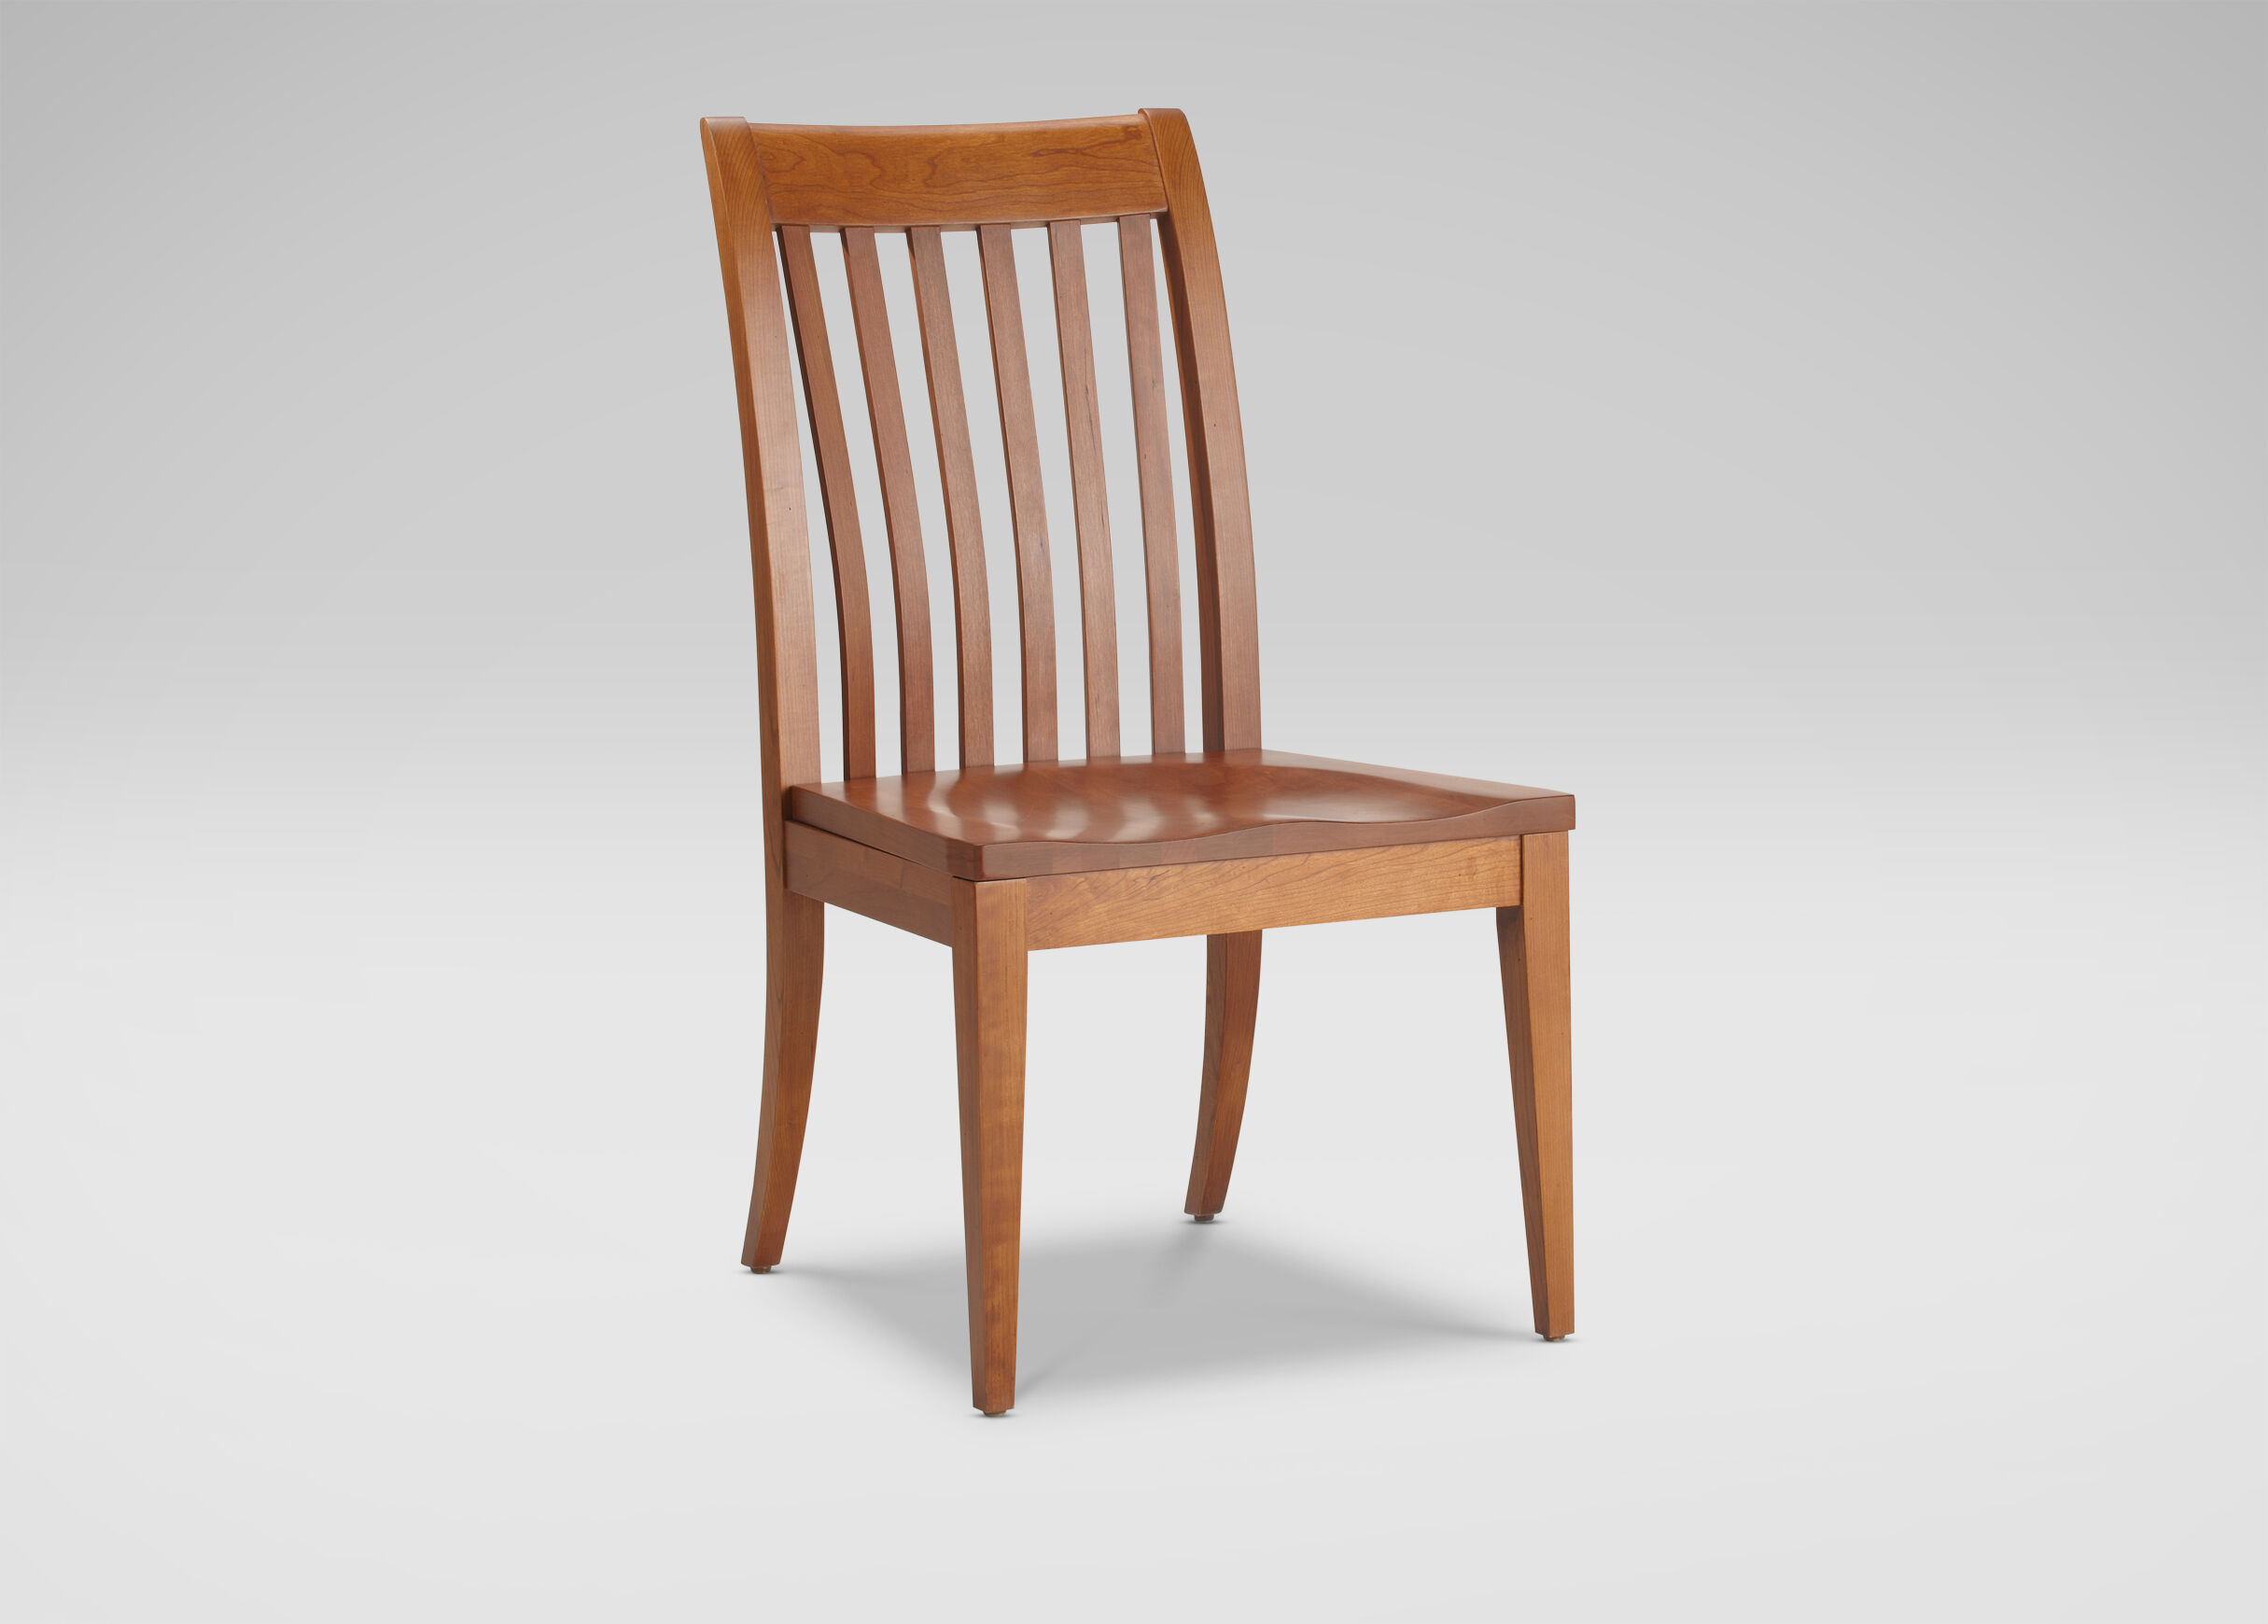 Delighful Wooden Chair Side In Decor